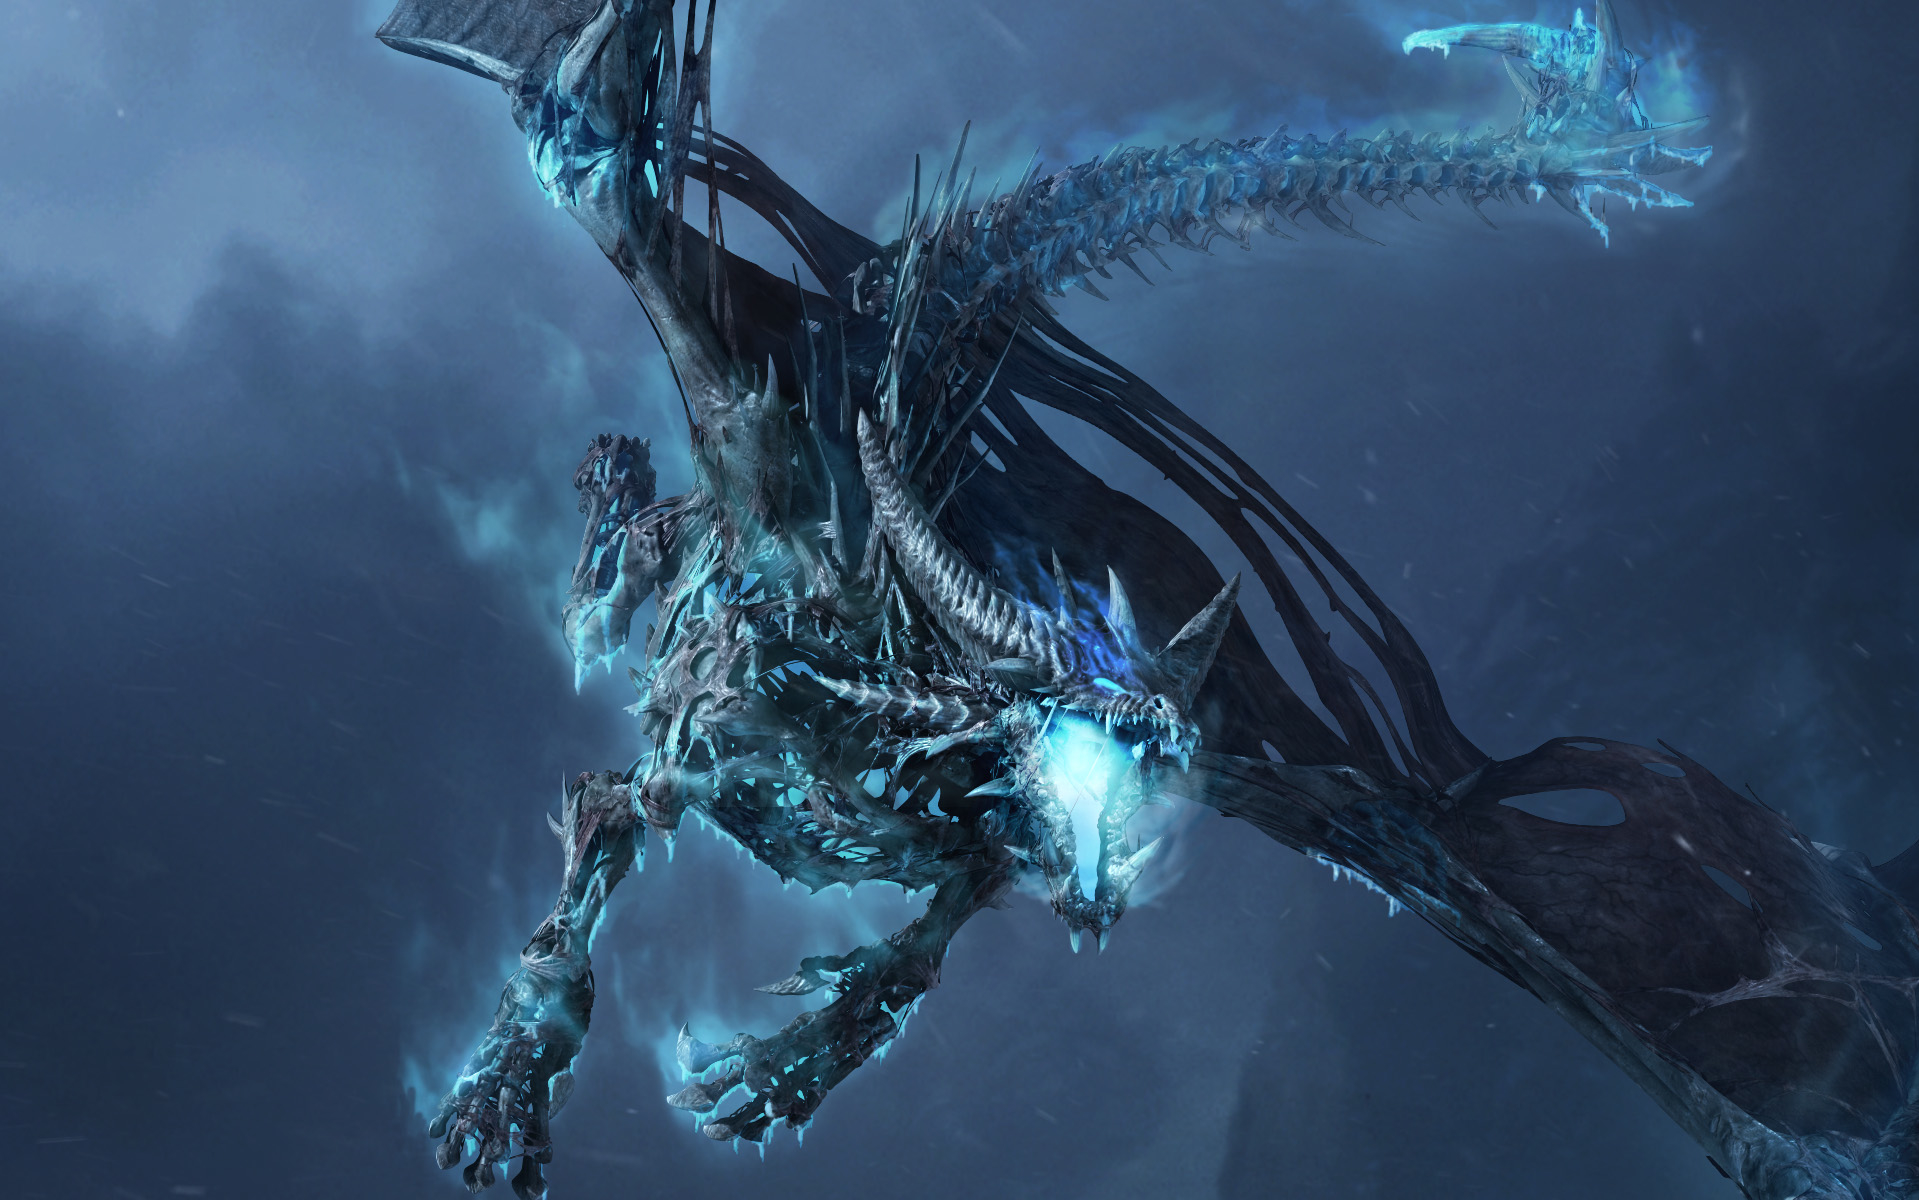 Ice Dragon Background Wallpapers 10174 - Amazing Wallpaperz